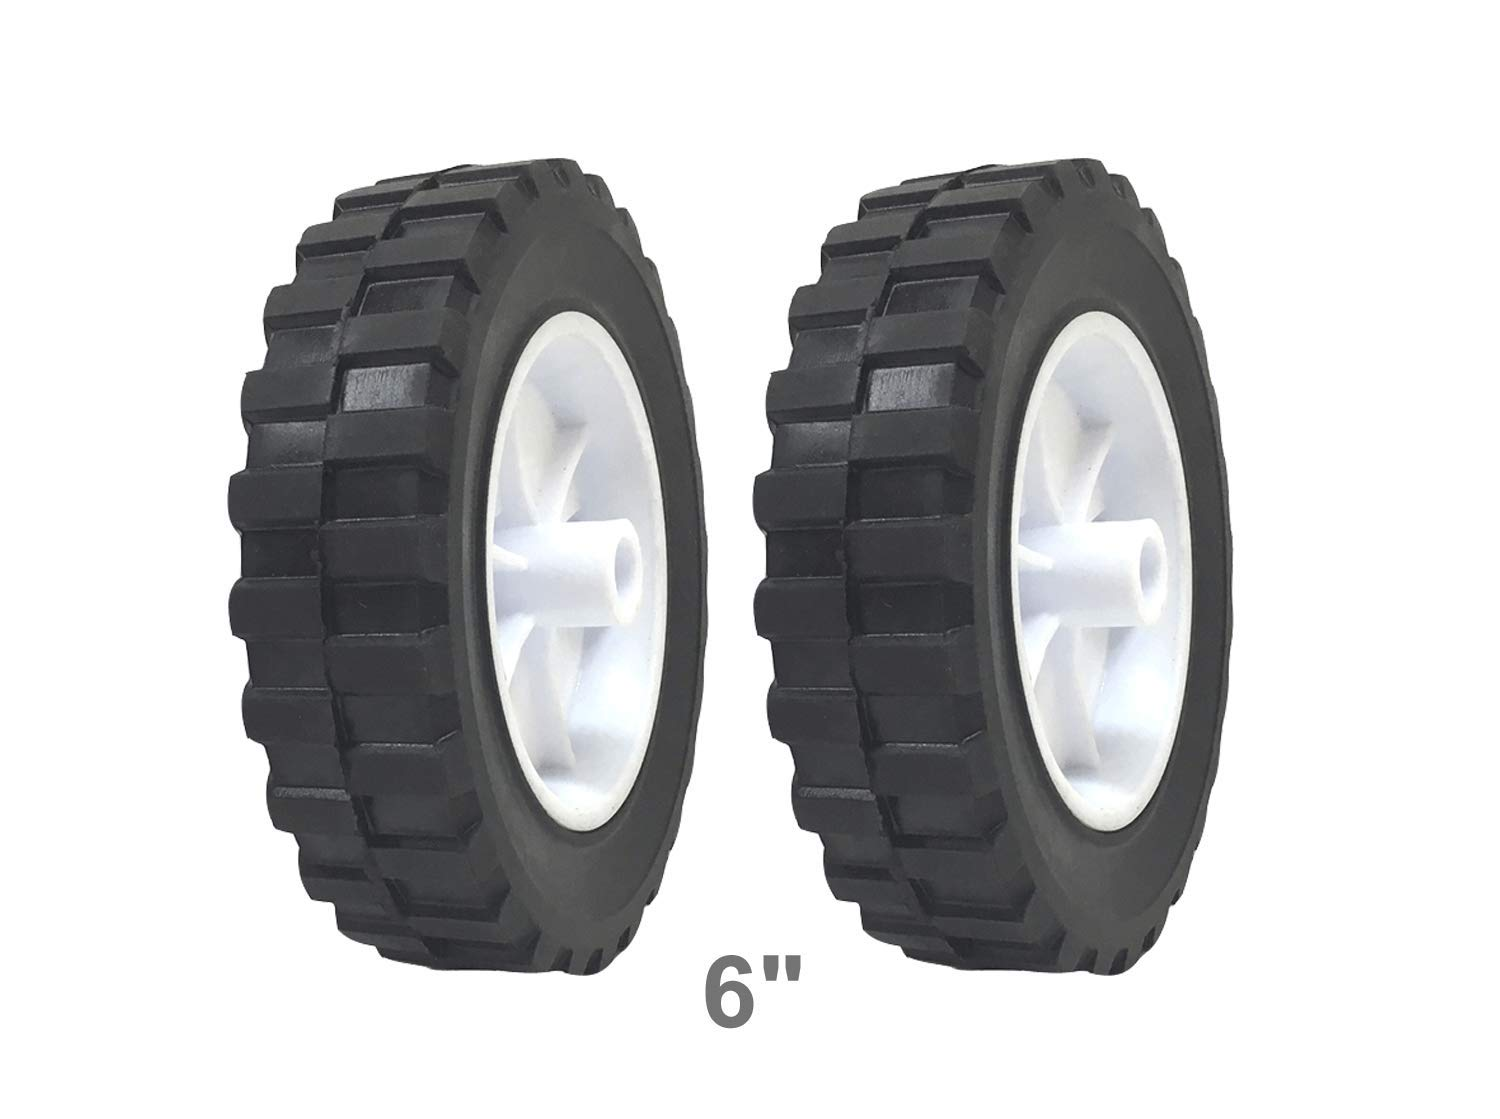 2 Pack - Solid Rubber Flat Free Tire 6'' x 1.5'' Hand Truck Wheel - - 1/2'' Axle Hole - 70 lbs Capacity